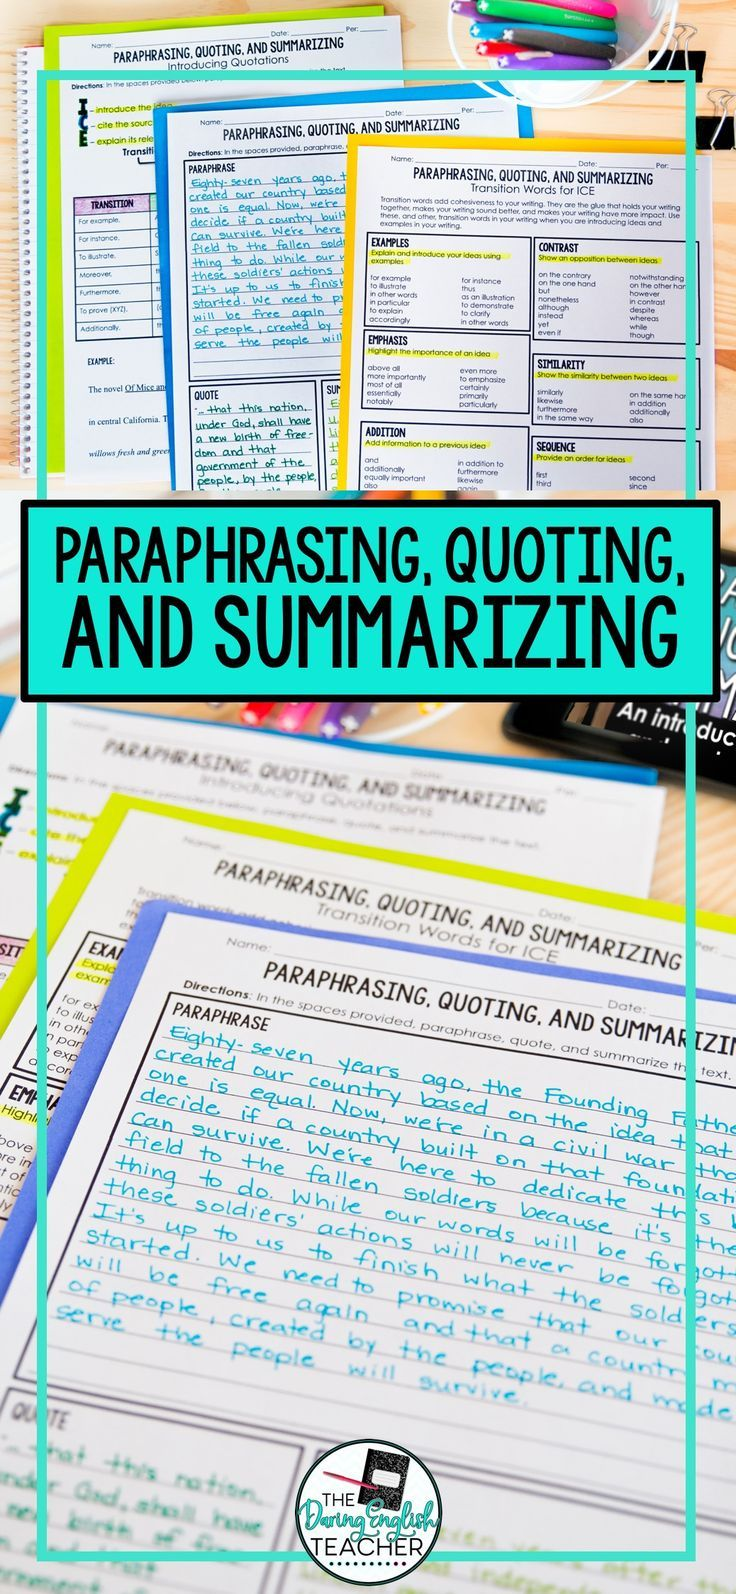 Paraphrase Quote Summarize Teach Your Student How To And Text With Th Teaching Summarizing Writing Lesson Instruction Motivational Activity For Paraphrasing